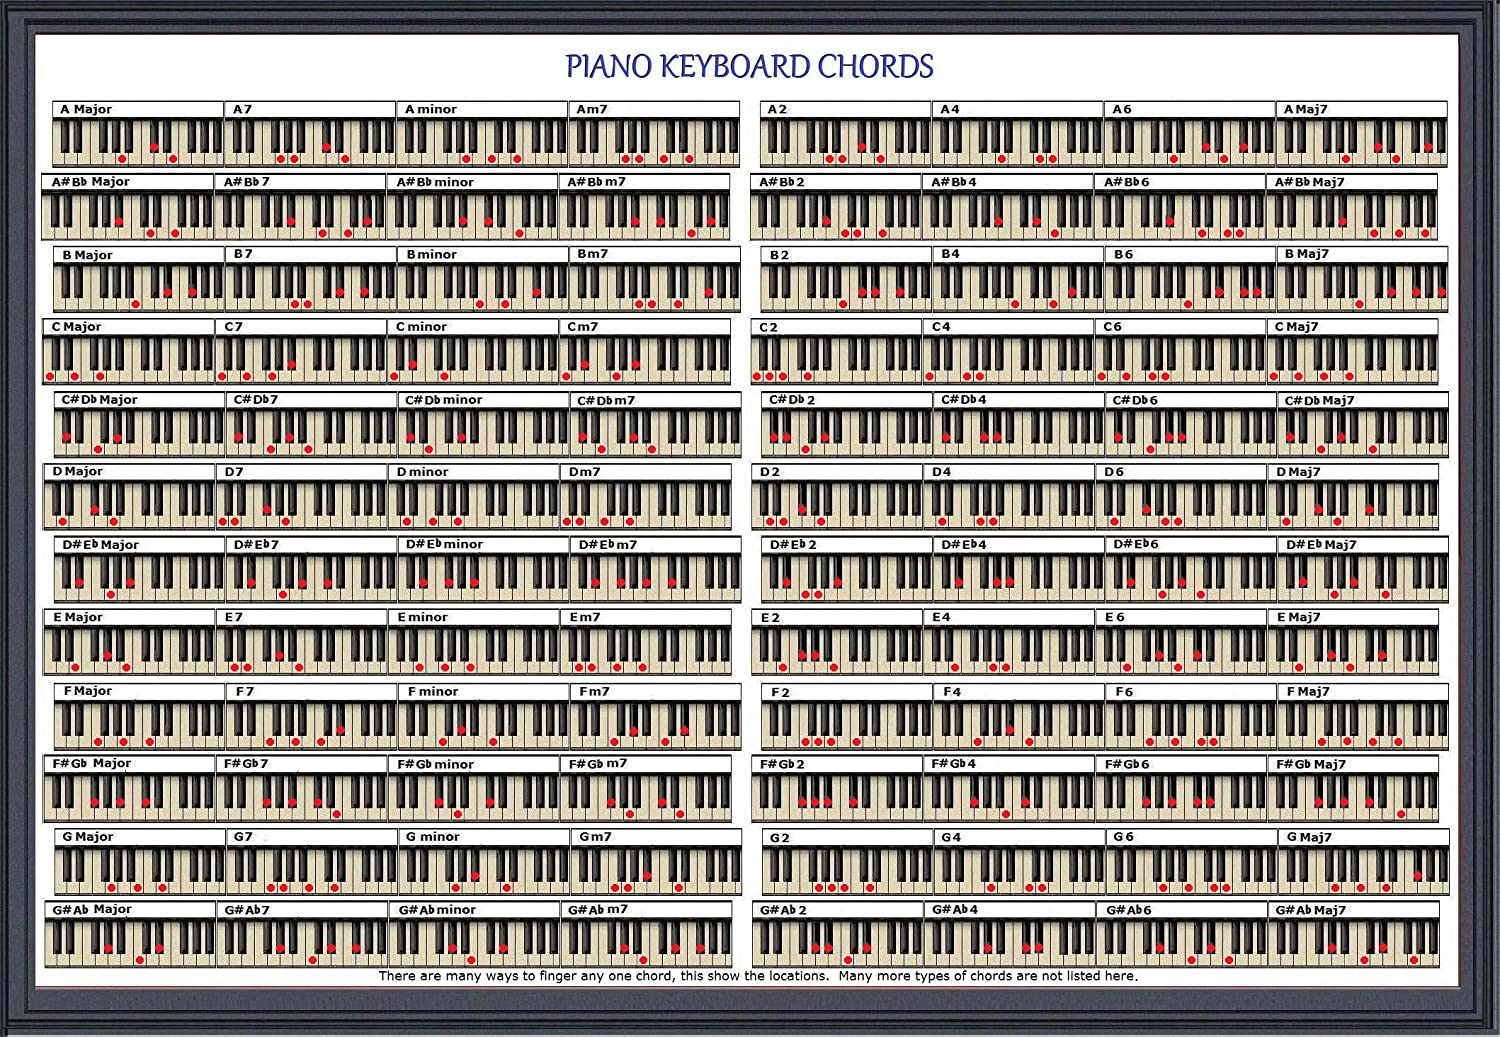 Amazon piano chord poster 13x19 with 96 chords keyboard amazon piano chord poster 13x19 with 96 chords keyboard or organ musical instruments hexwebz Choice Image